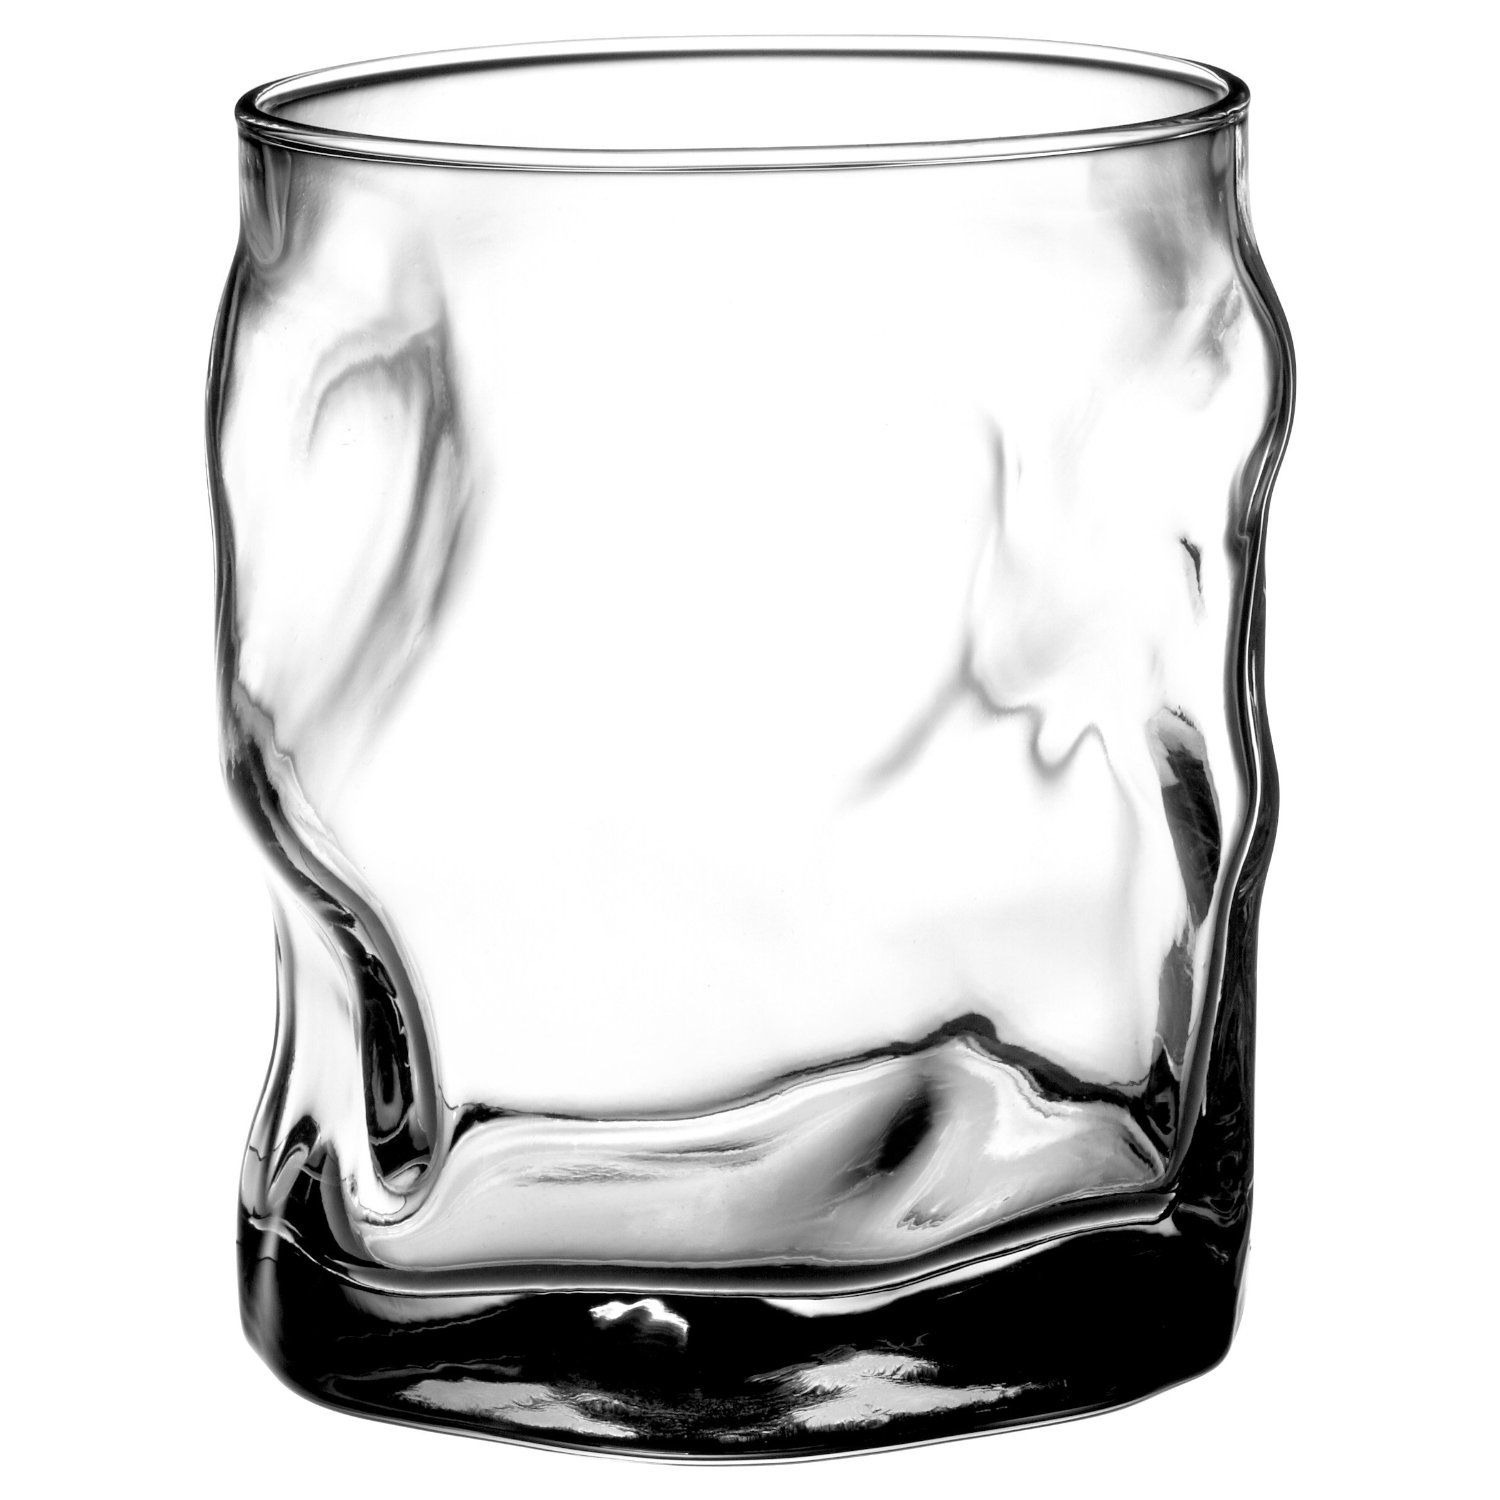 glassware my kind of oldfashioned glass (With images